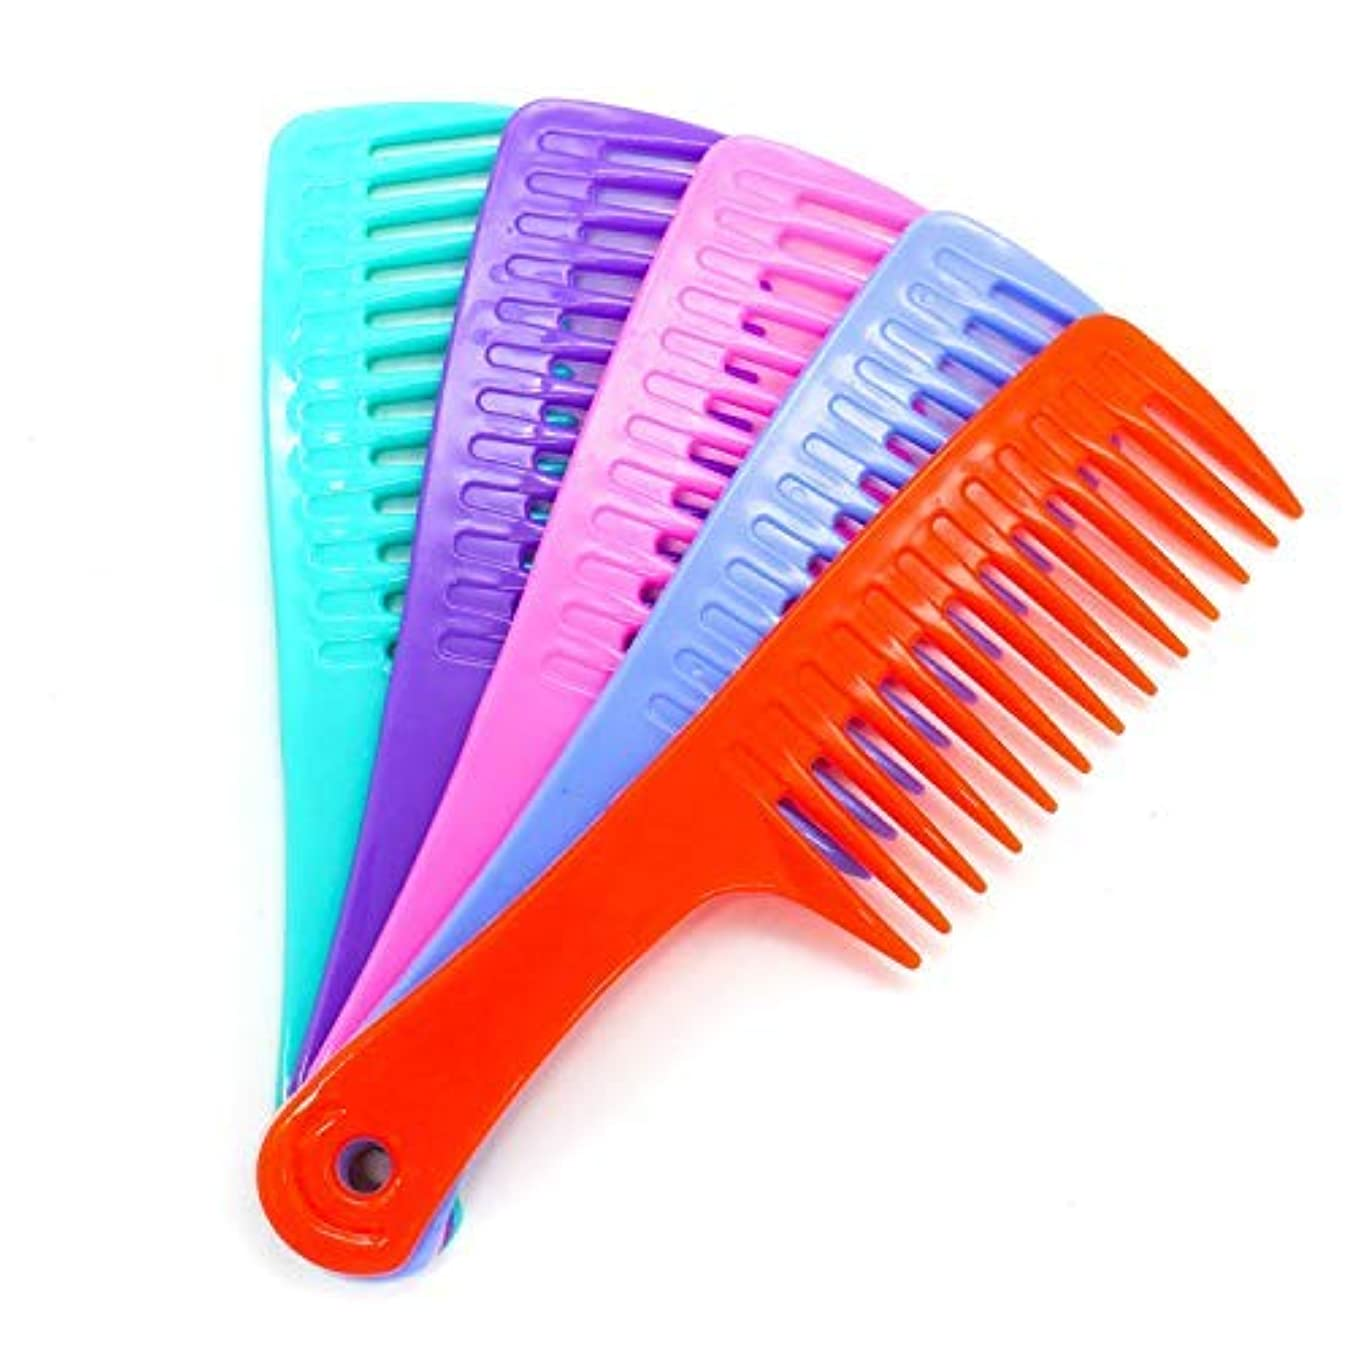 プリーツ暴君アナウンサーHUELE 5 Pack Colorful Wide Tooth Detangler Hair Brush Detangling Comb for Adults & Kids Handle Comb [並行輸入品]